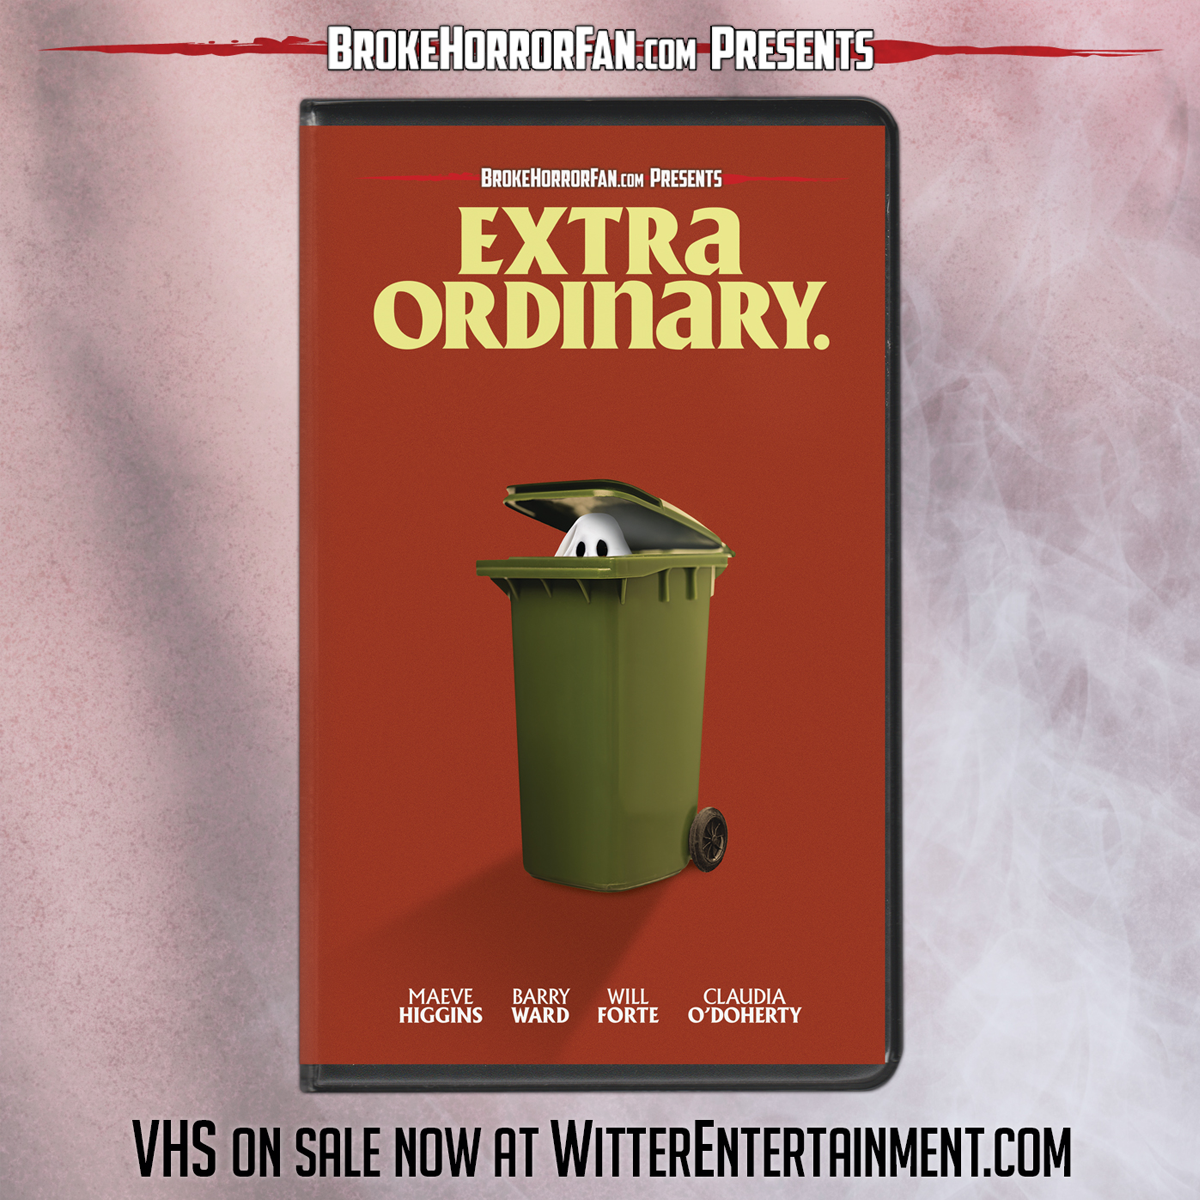 'EXTRA ORDINARY' UNLEASHED ON VHS